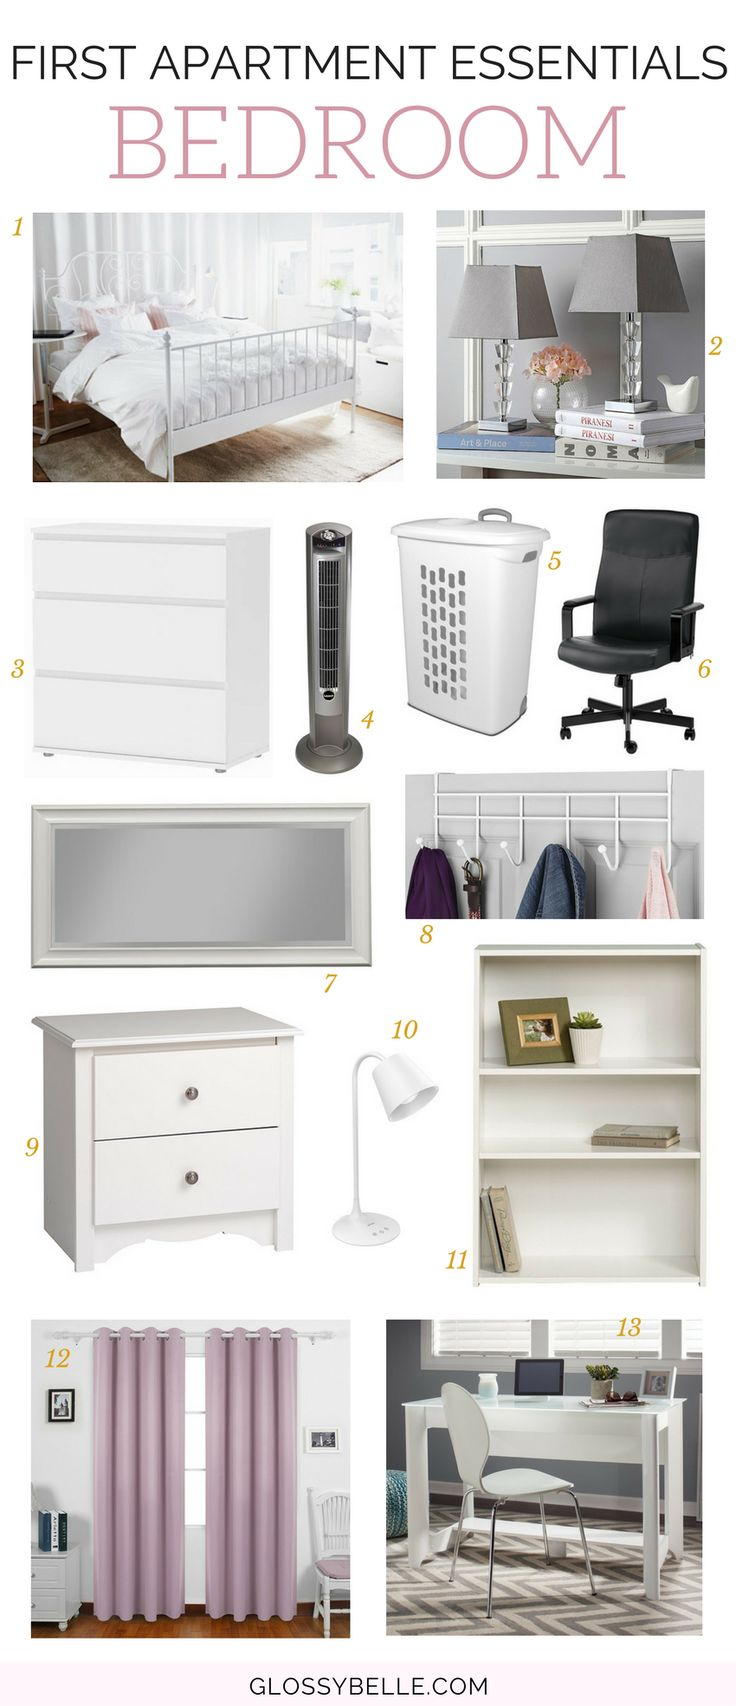 Best 25+ First apartment essentials ideas on Pinterest | Apartment ...